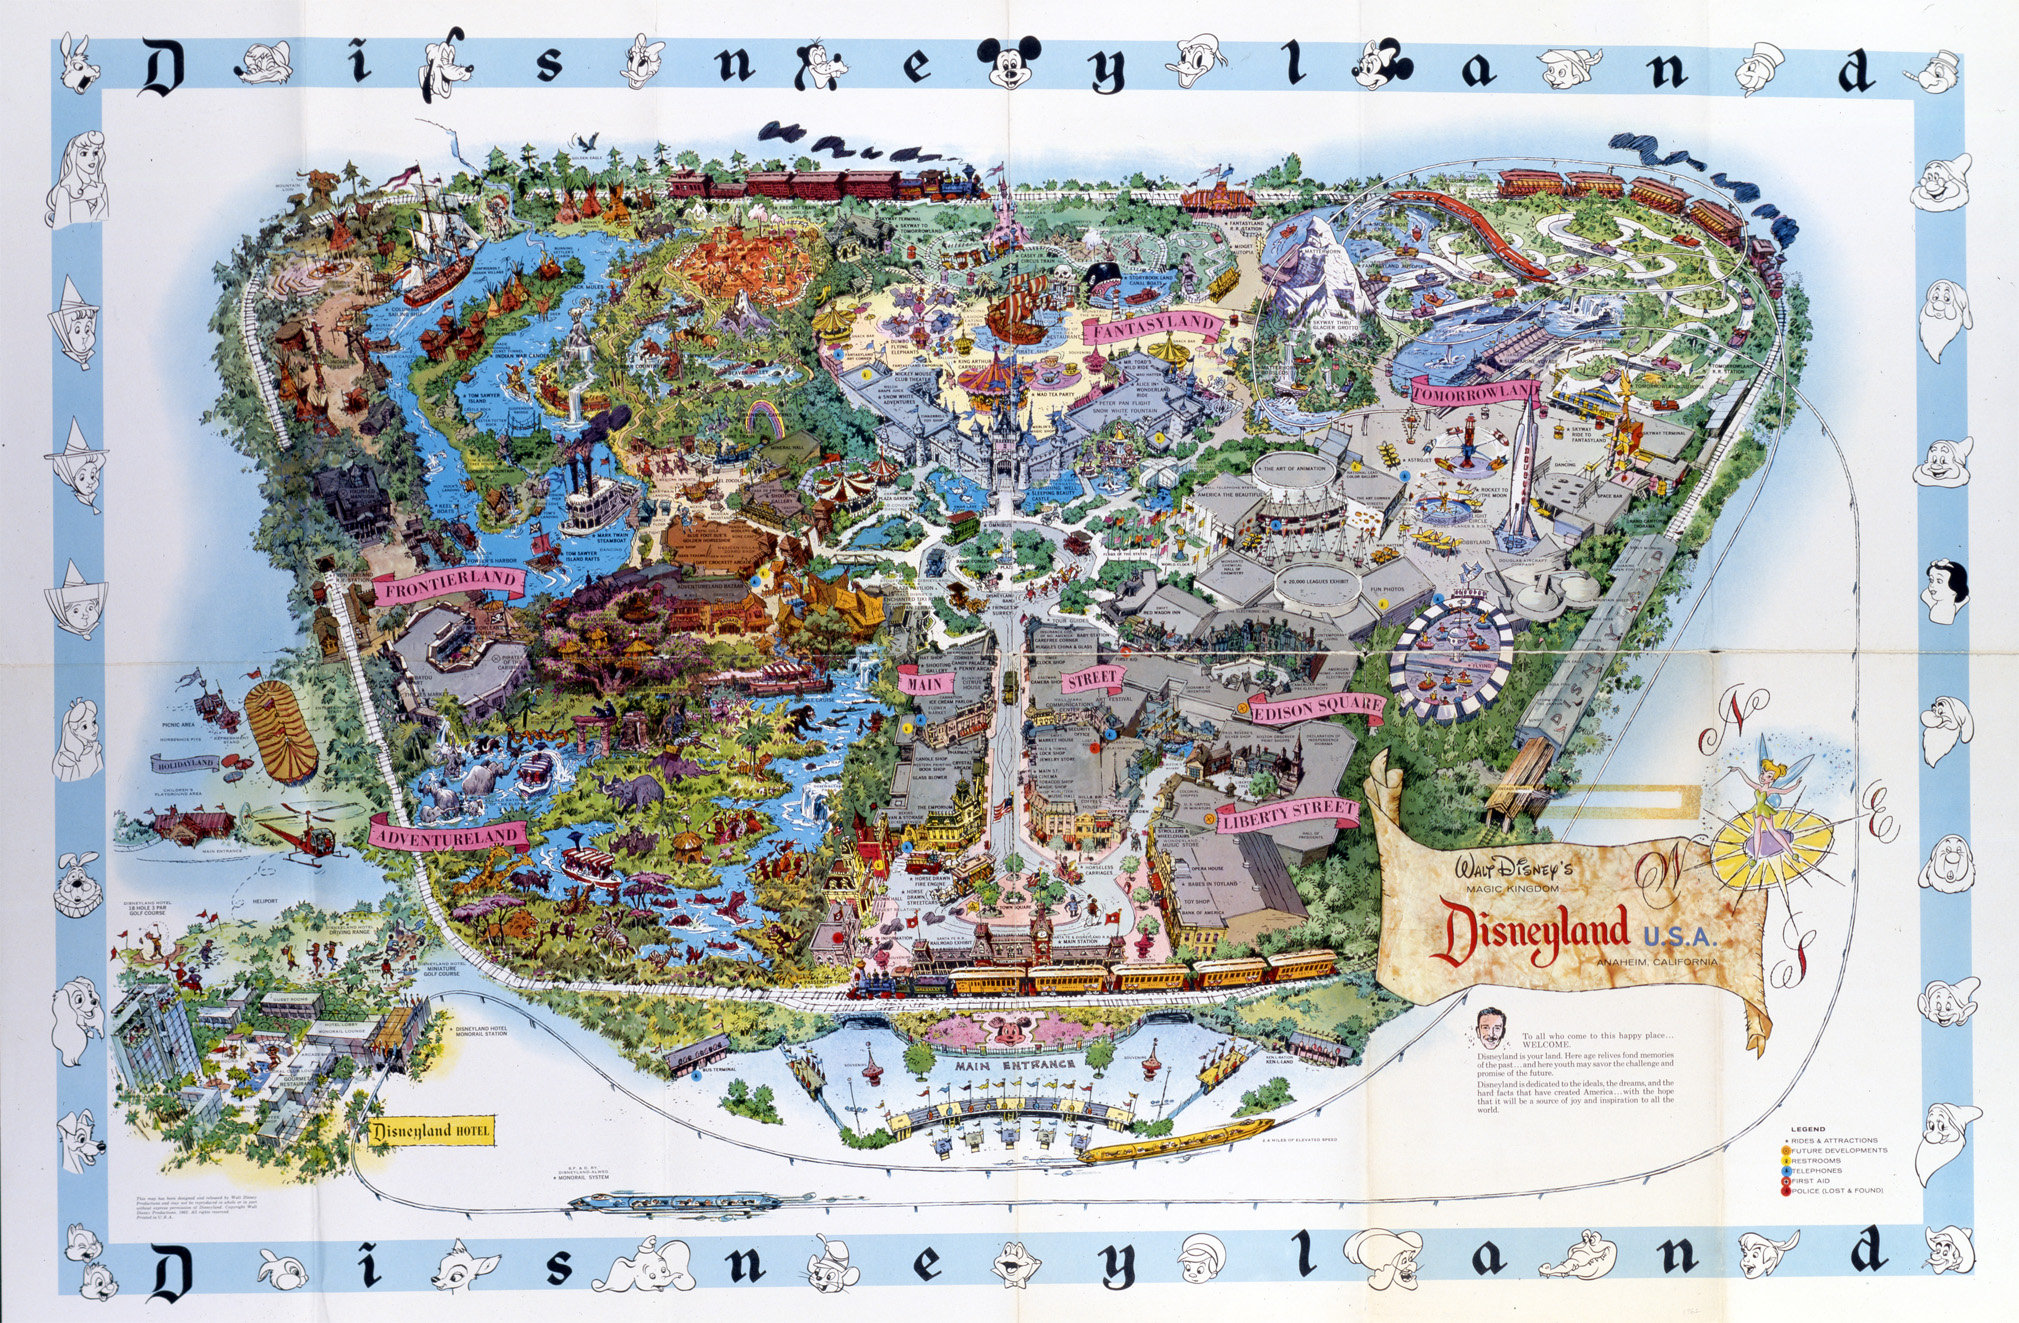 Disneyland Locations World Map.Disneyland S Evolution Through Maps Kcrw